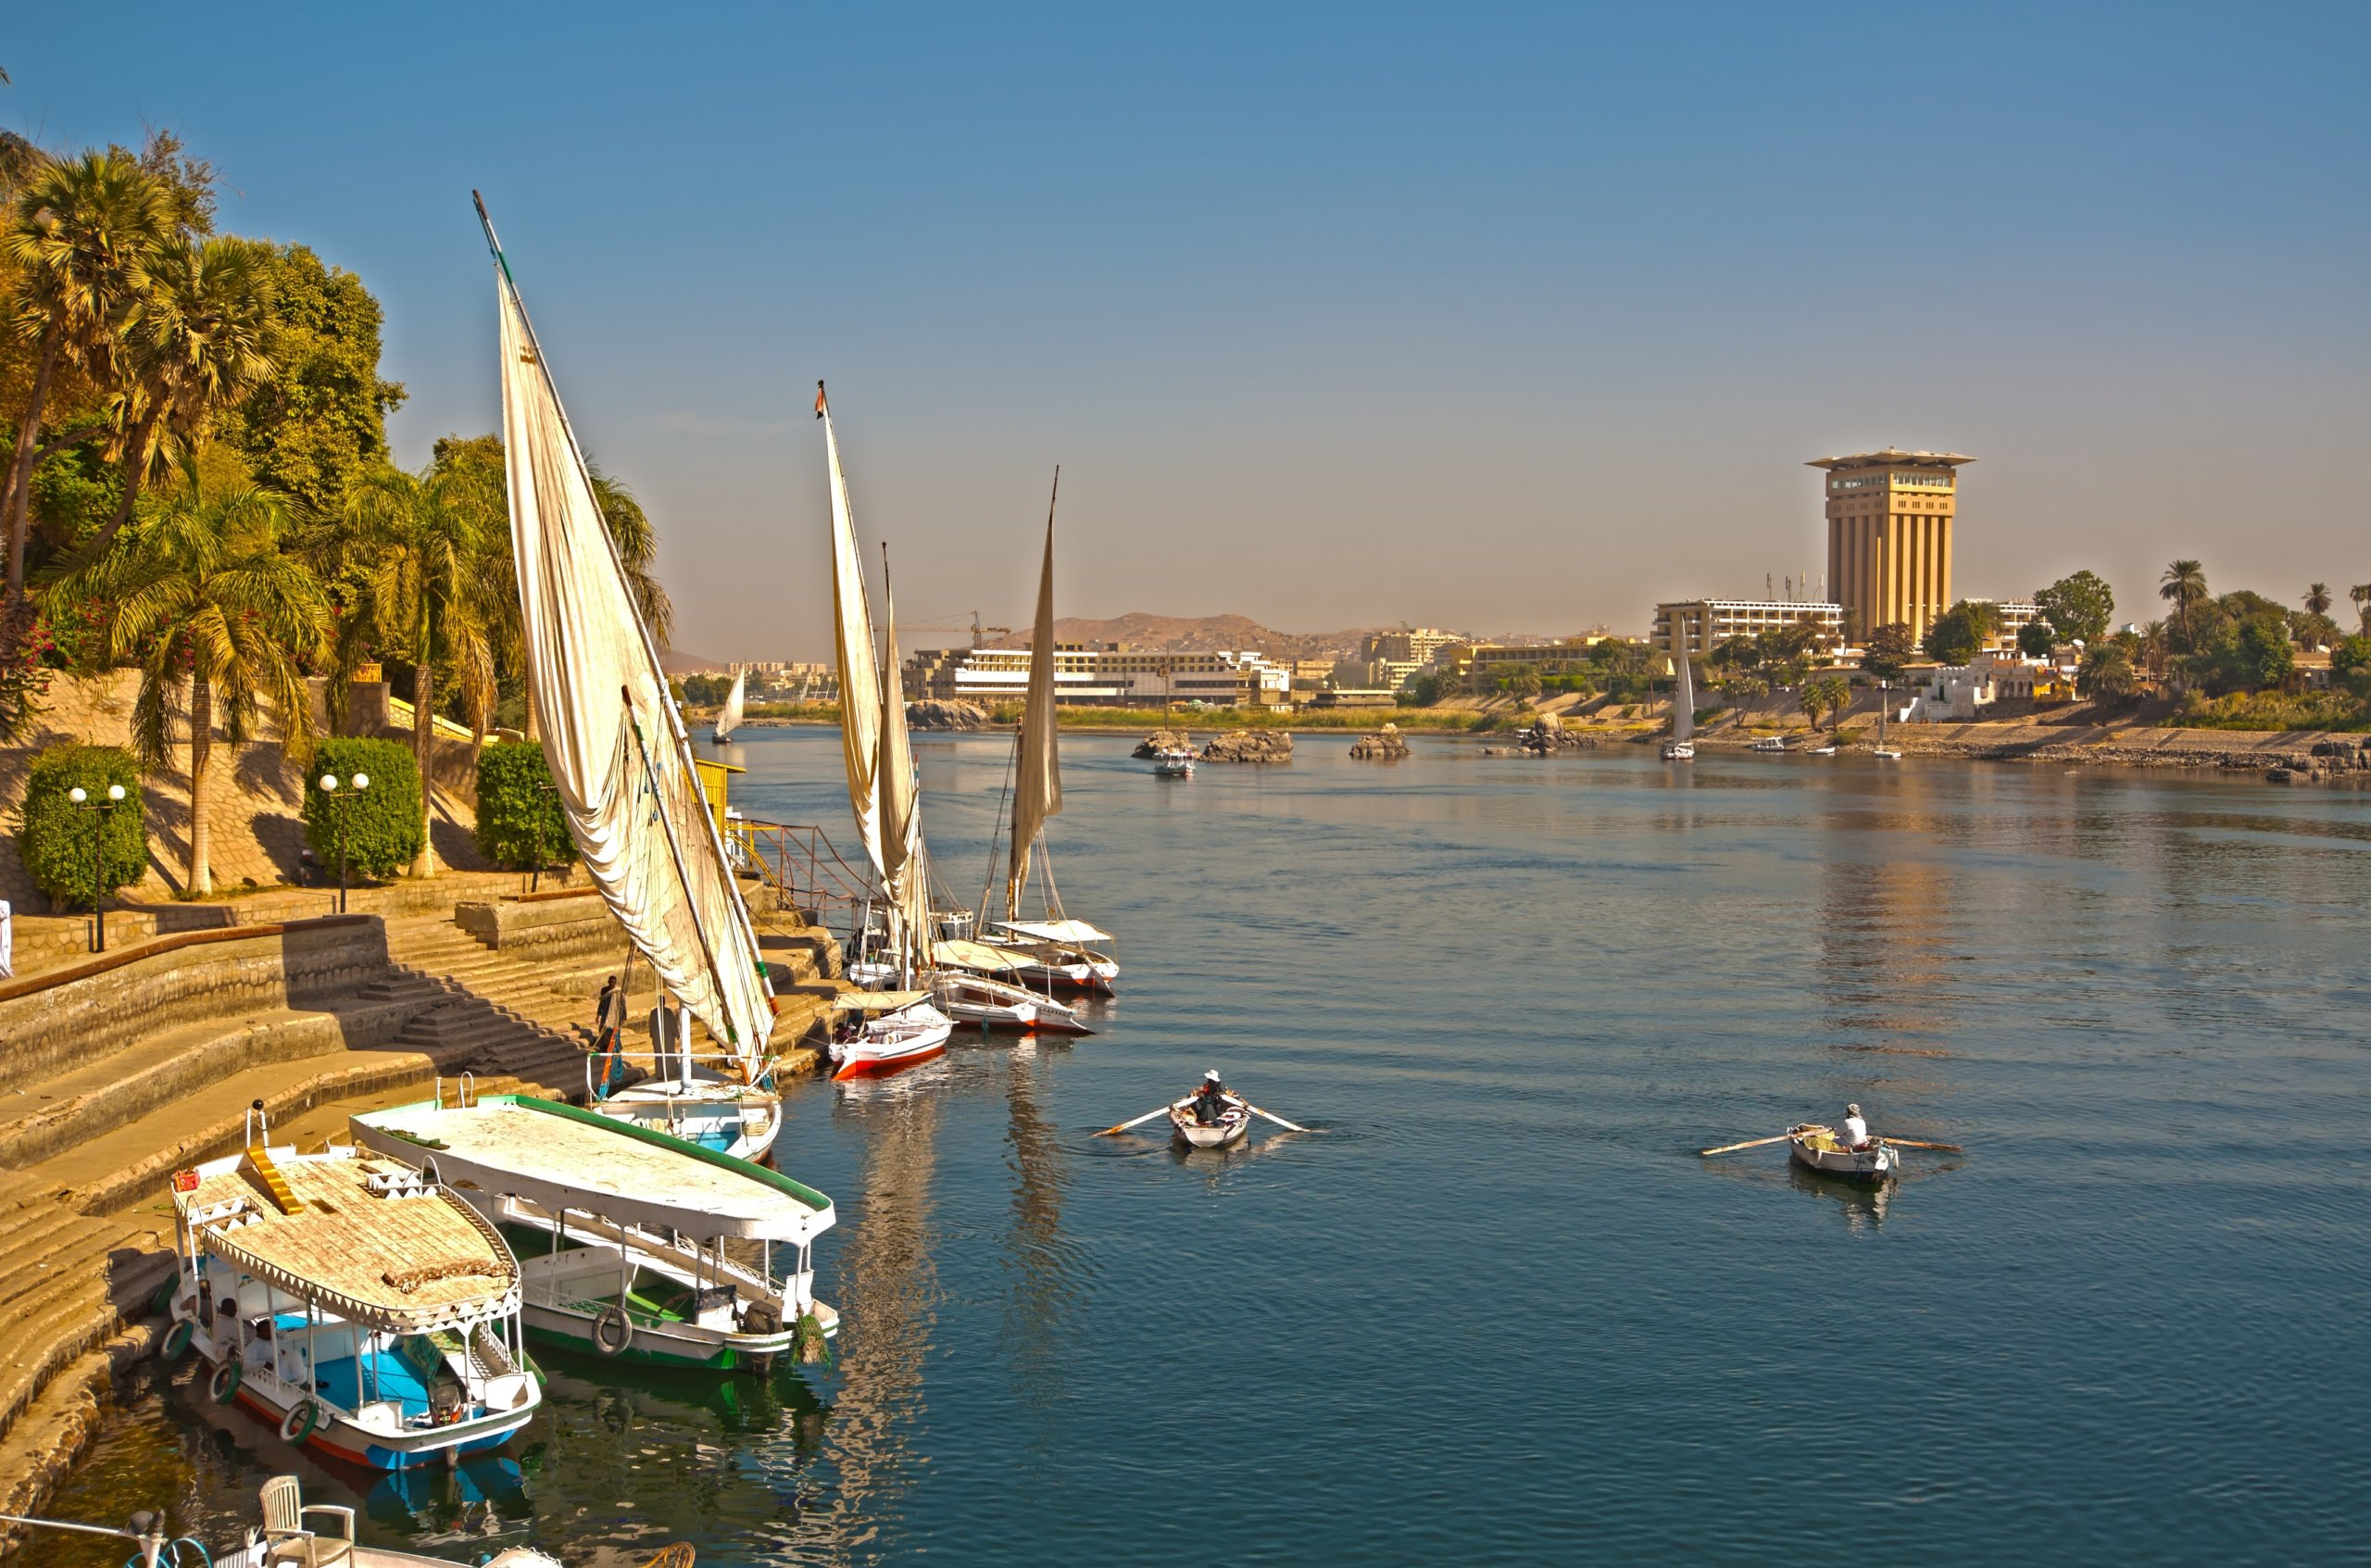 The Nile crossing Aswan © Frédéric Roubieu